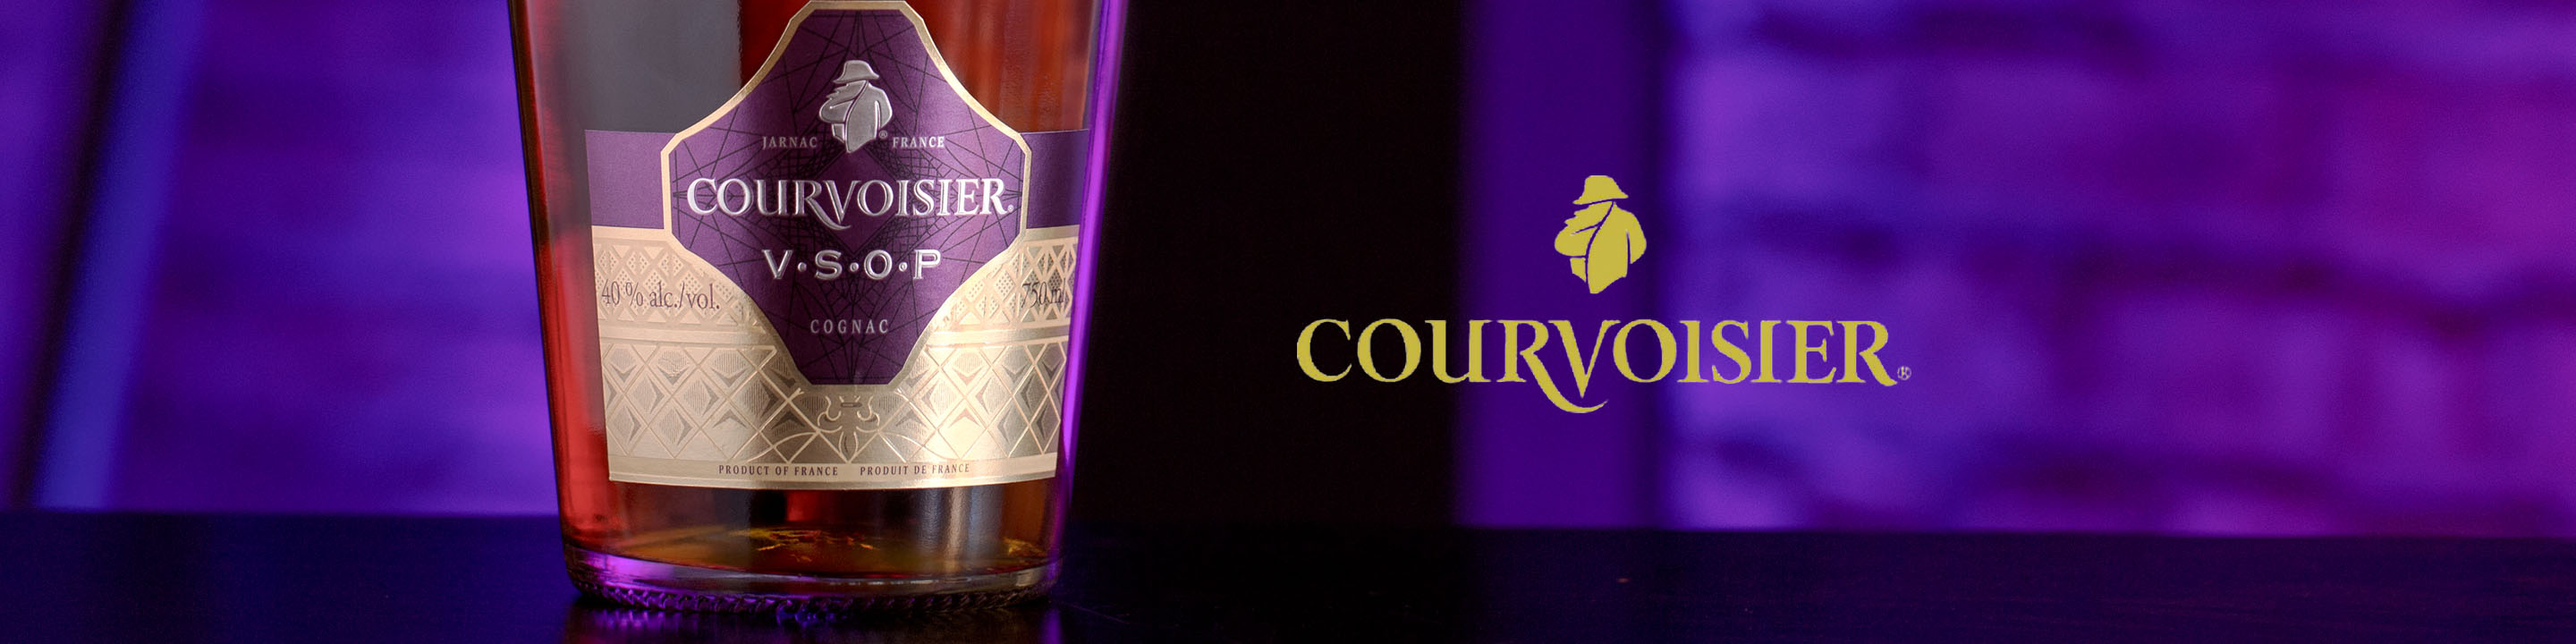 Since its creation in 1809, Courvoisier® has crafted cognac to be rich and sophisticated to ignite the senses and give reason to celebrate. Inspired by innovation, ingenuity and elegance.   Buy Courvoisier online now from nearby liquor stores via Minibar Delivery.